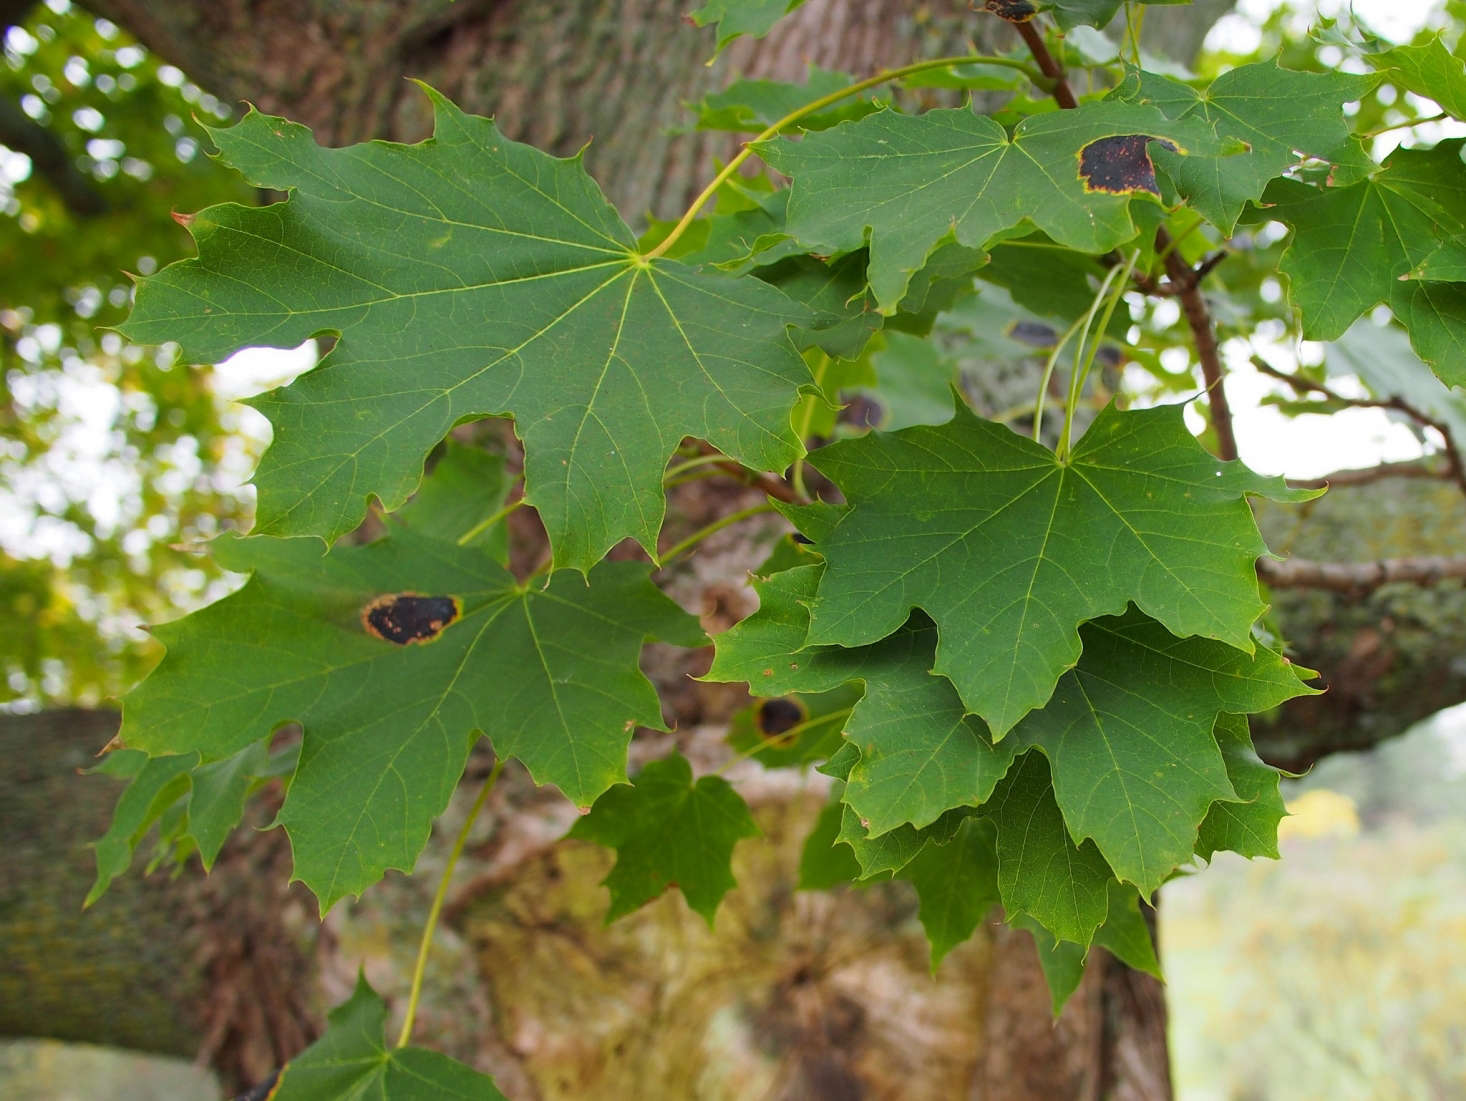 A Norway maple. Photograph by F.D. Richards via Flickr.